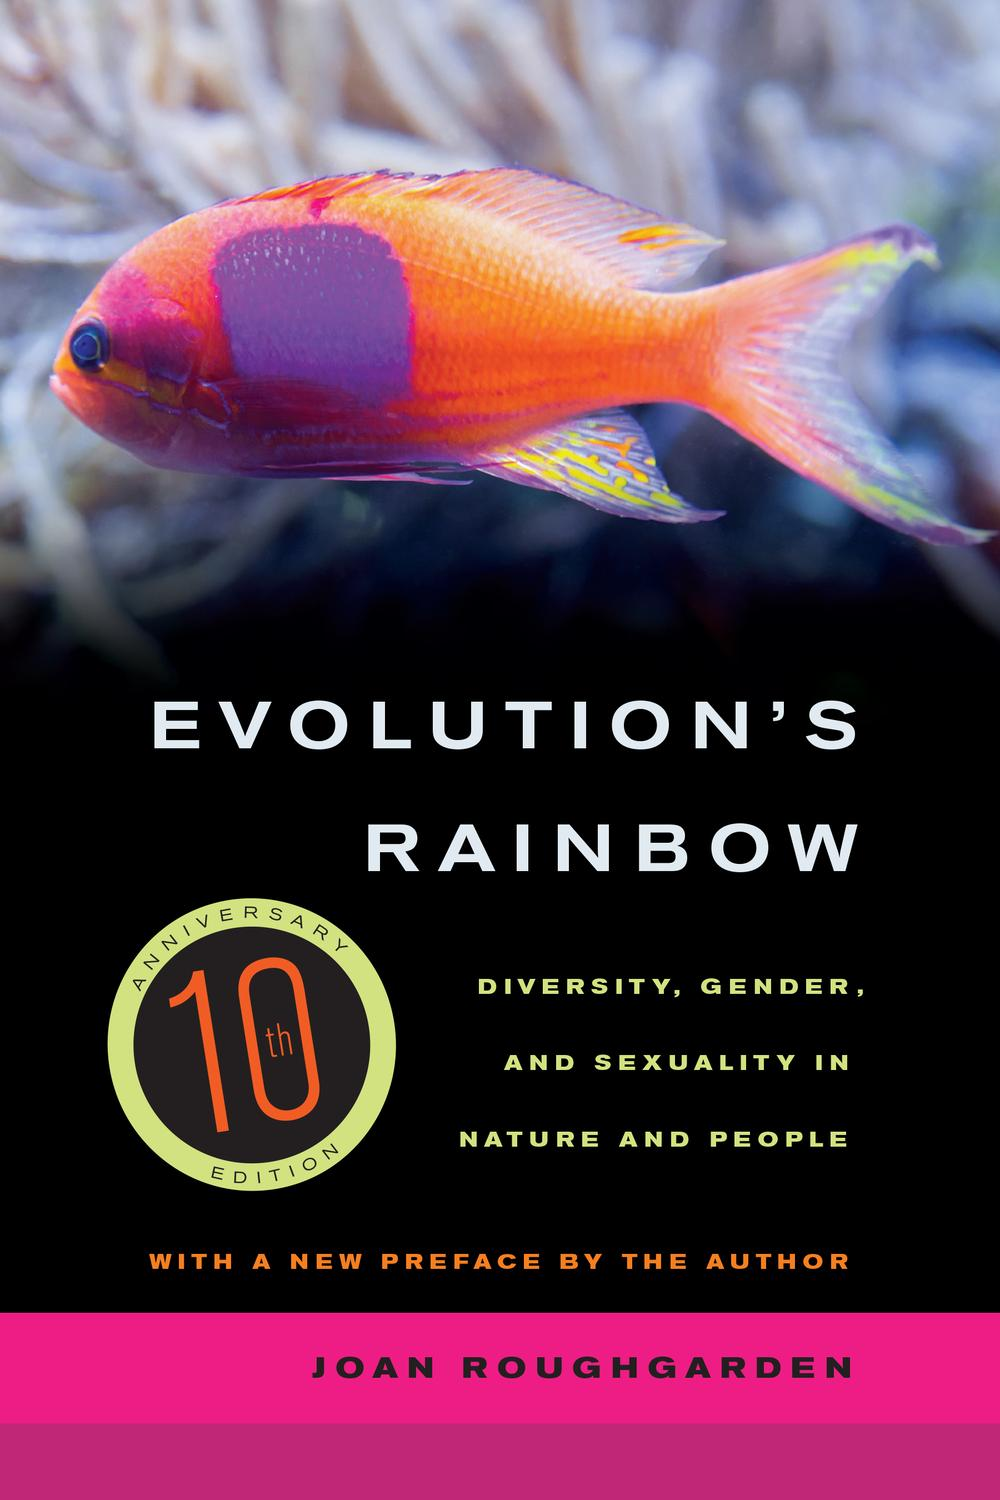 Evolution's Rainbow by Joan Roughgarden | Read online | PDF